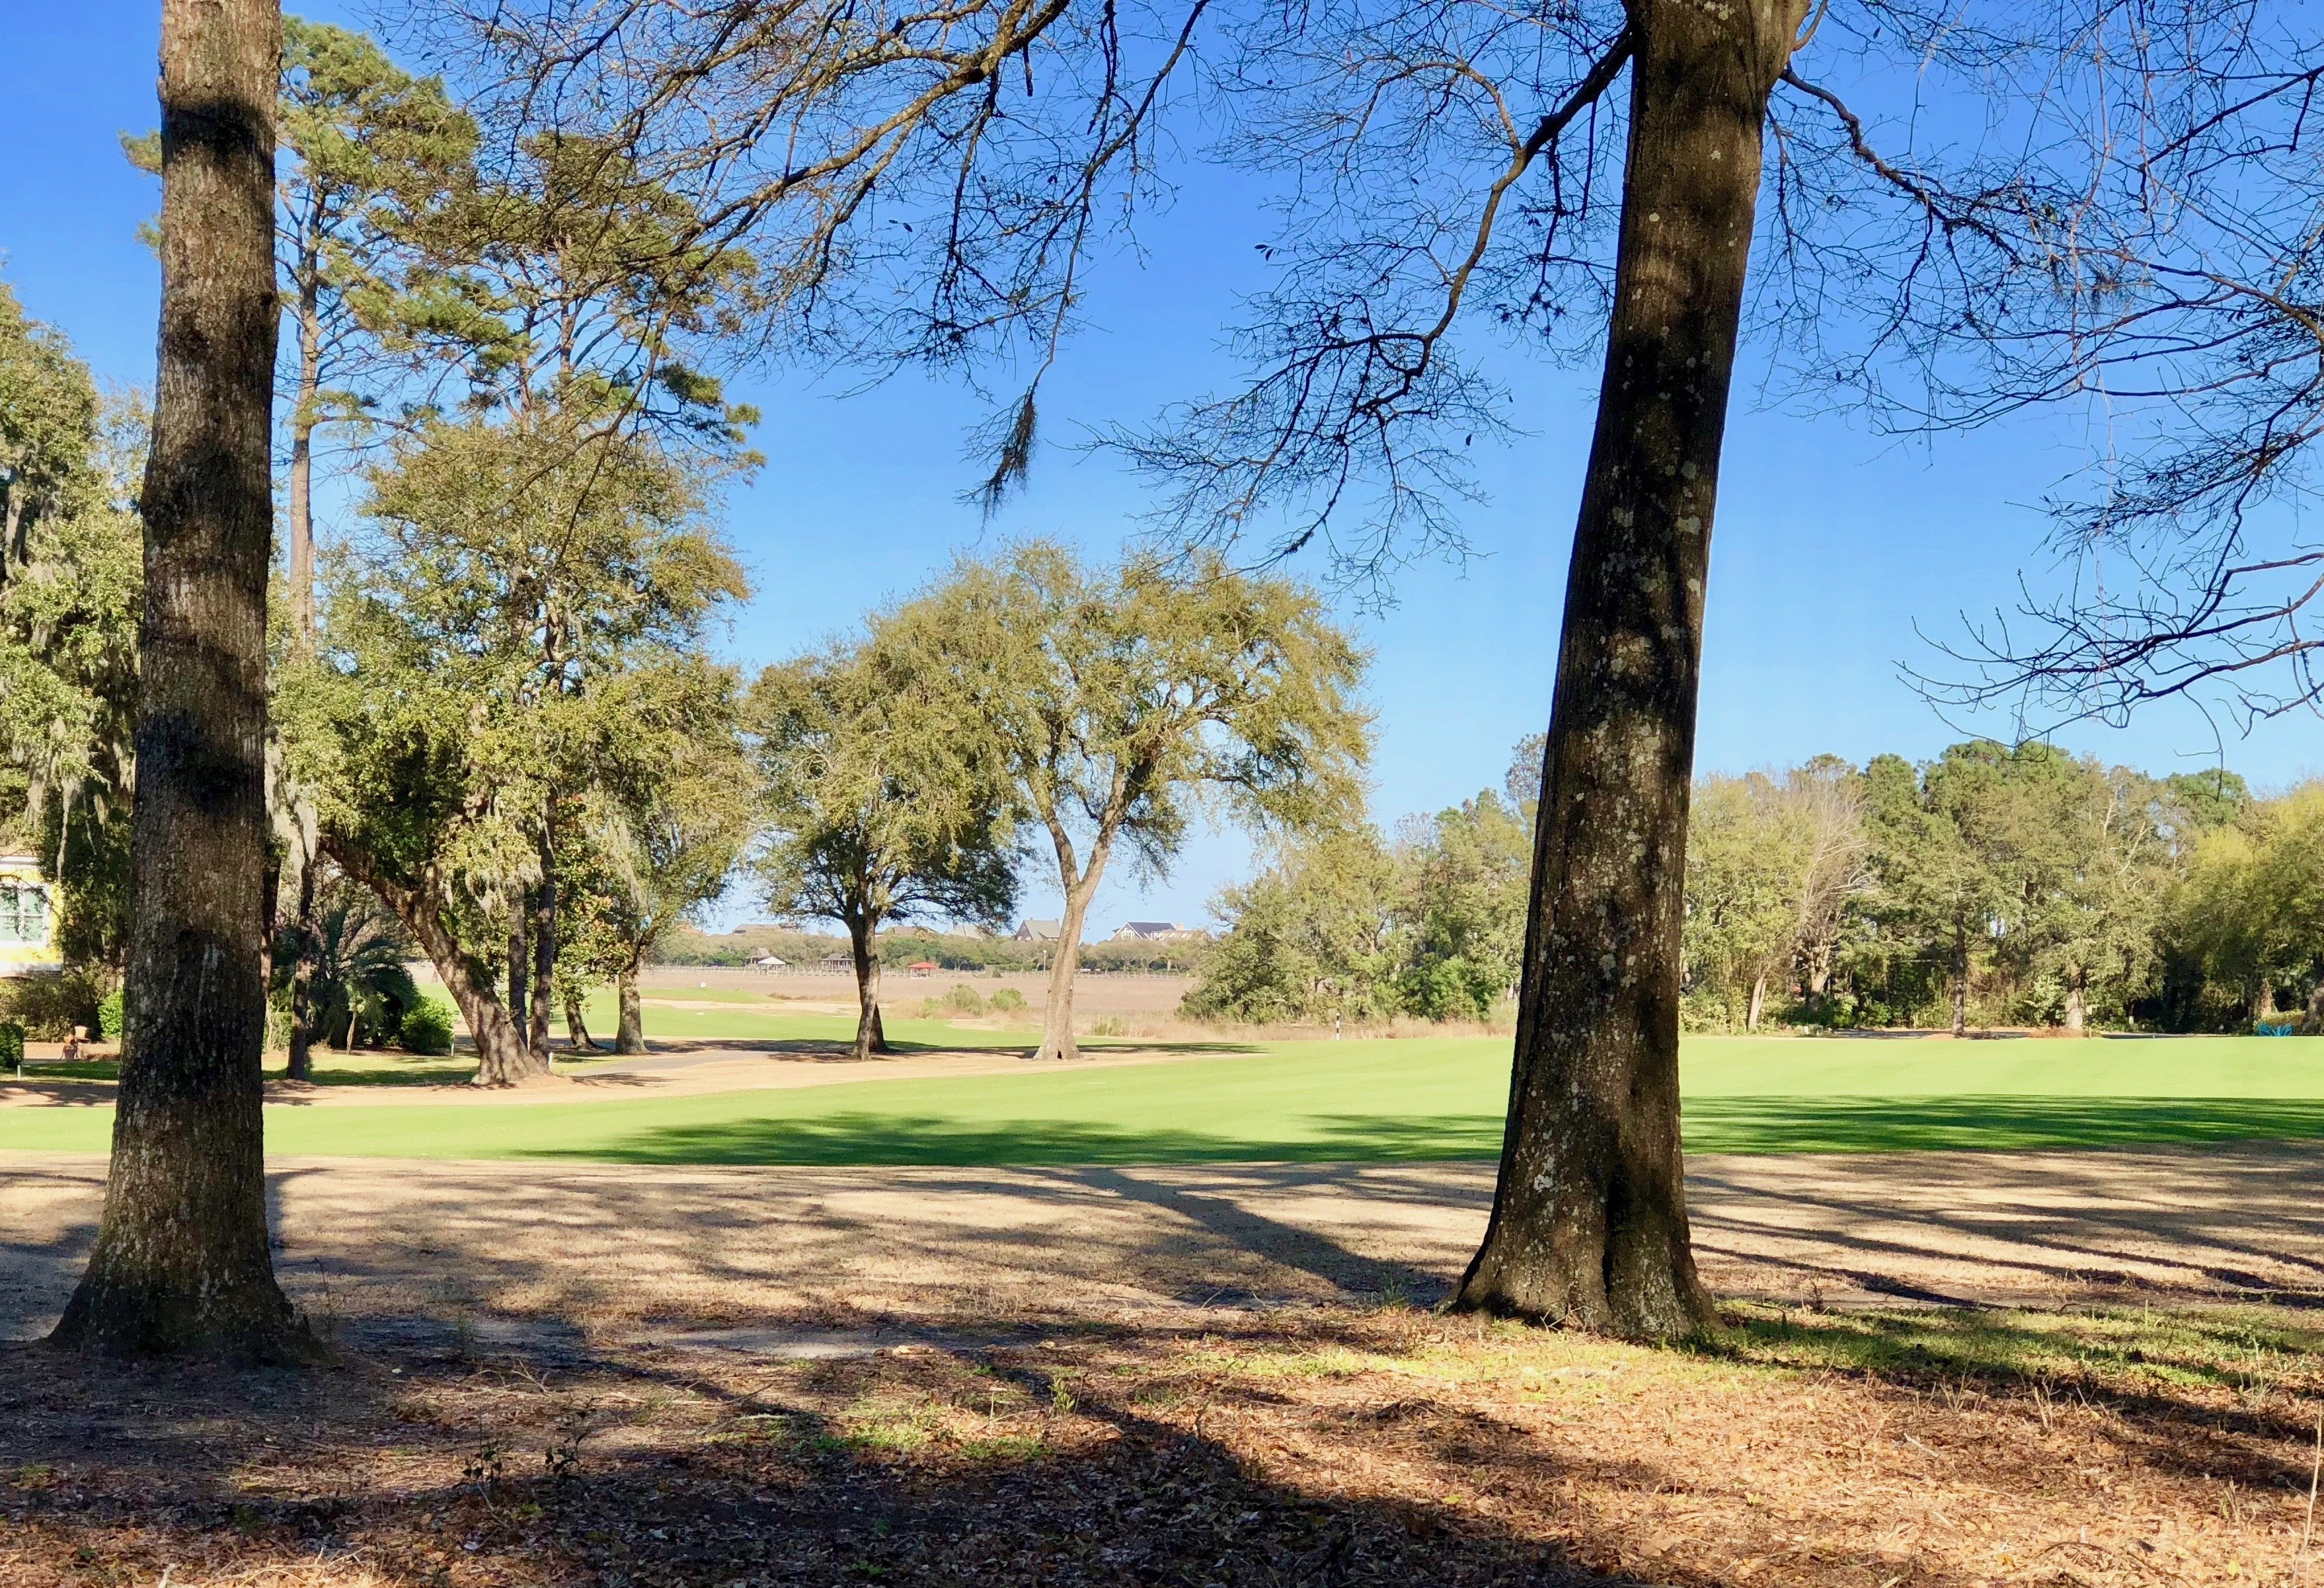 A long view out to the marsh from the back of a lot for sale on the dogleg left 16th hole at Pawleys Plantation, Pawleys Island, SC.  If interested, please contact me.